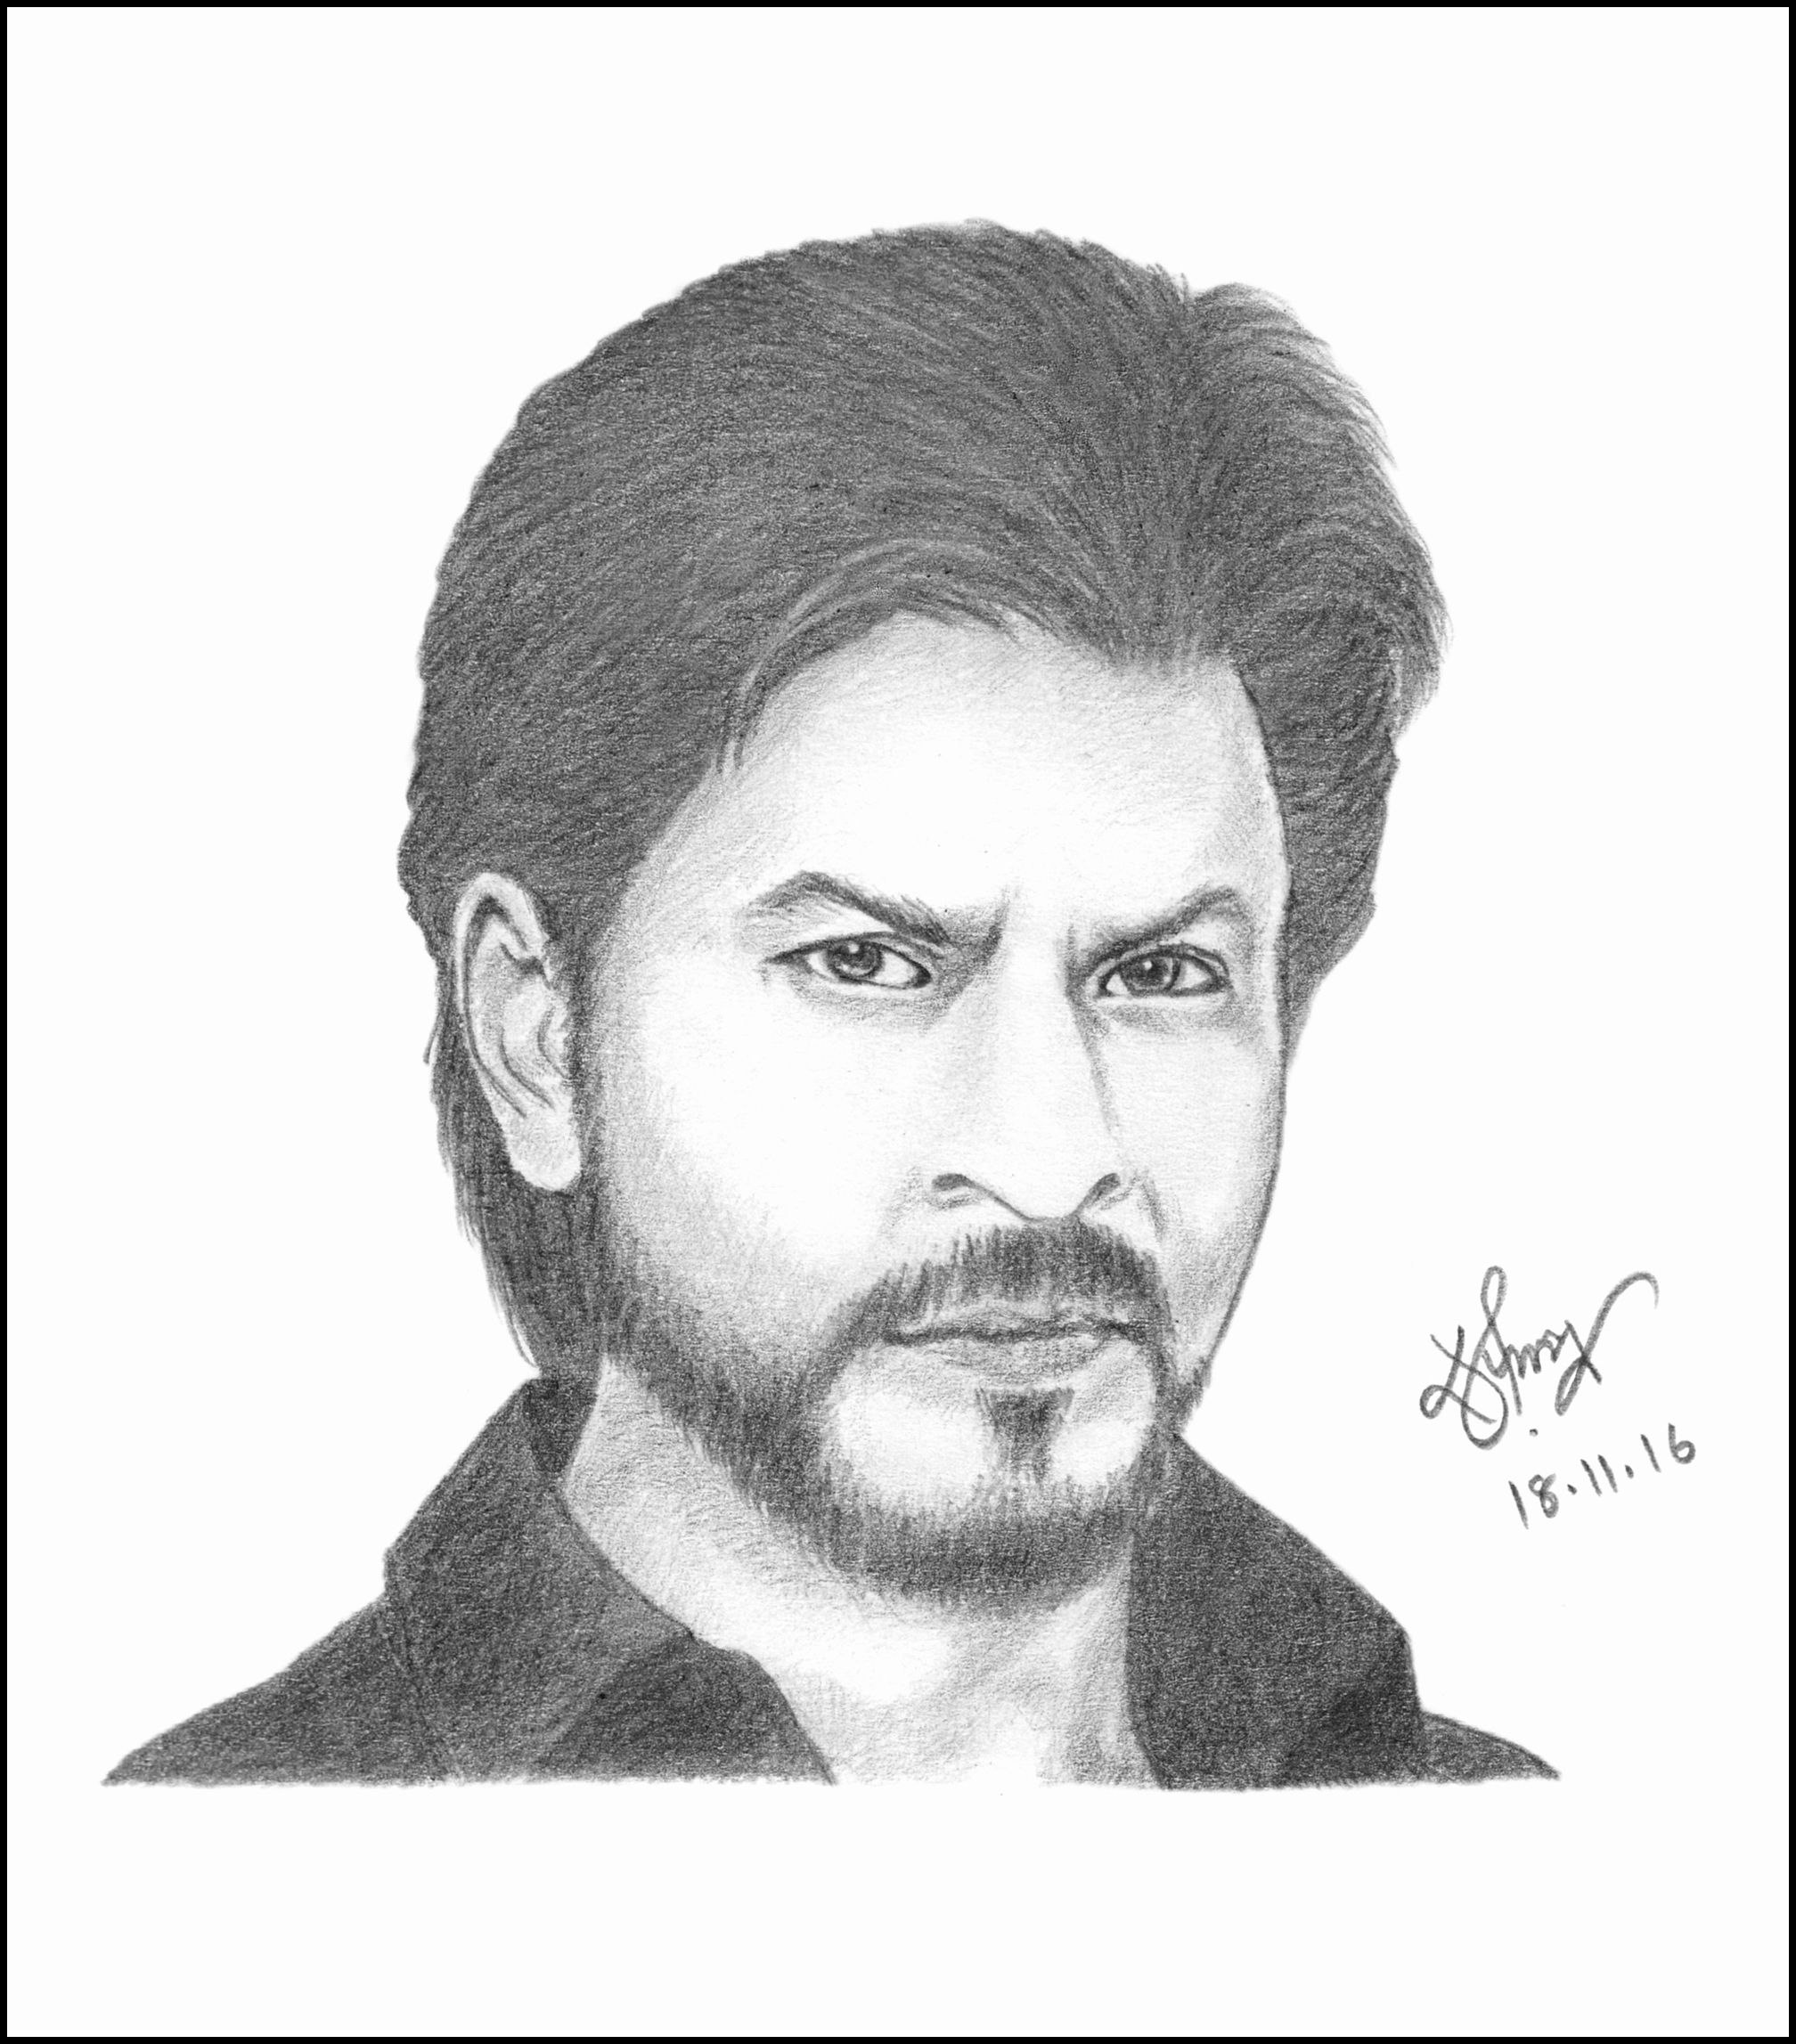 shahrukh khan coloring pages | Shahid kapoor pencil sketchesfine art in 2018 t Shahid